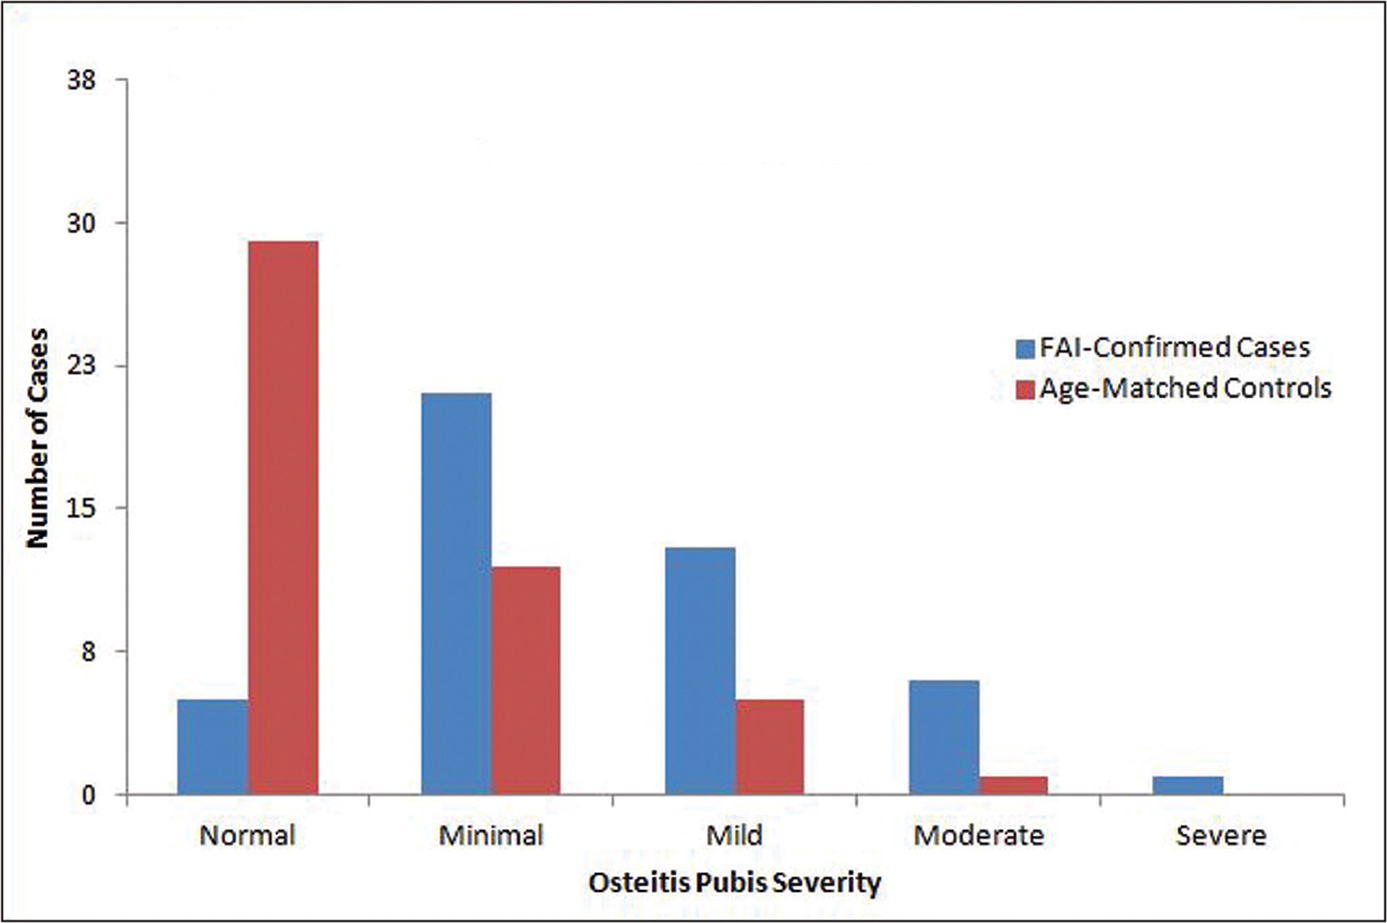 Severity of osteitis pubis based on a 4-point Likert scale from minimal to severe (0=normal/no osteitis pubis, 1=minimal, 2=mild, 3=moderate, 4=severe). Abbreviation: FAI, femoroacetabular impingement.